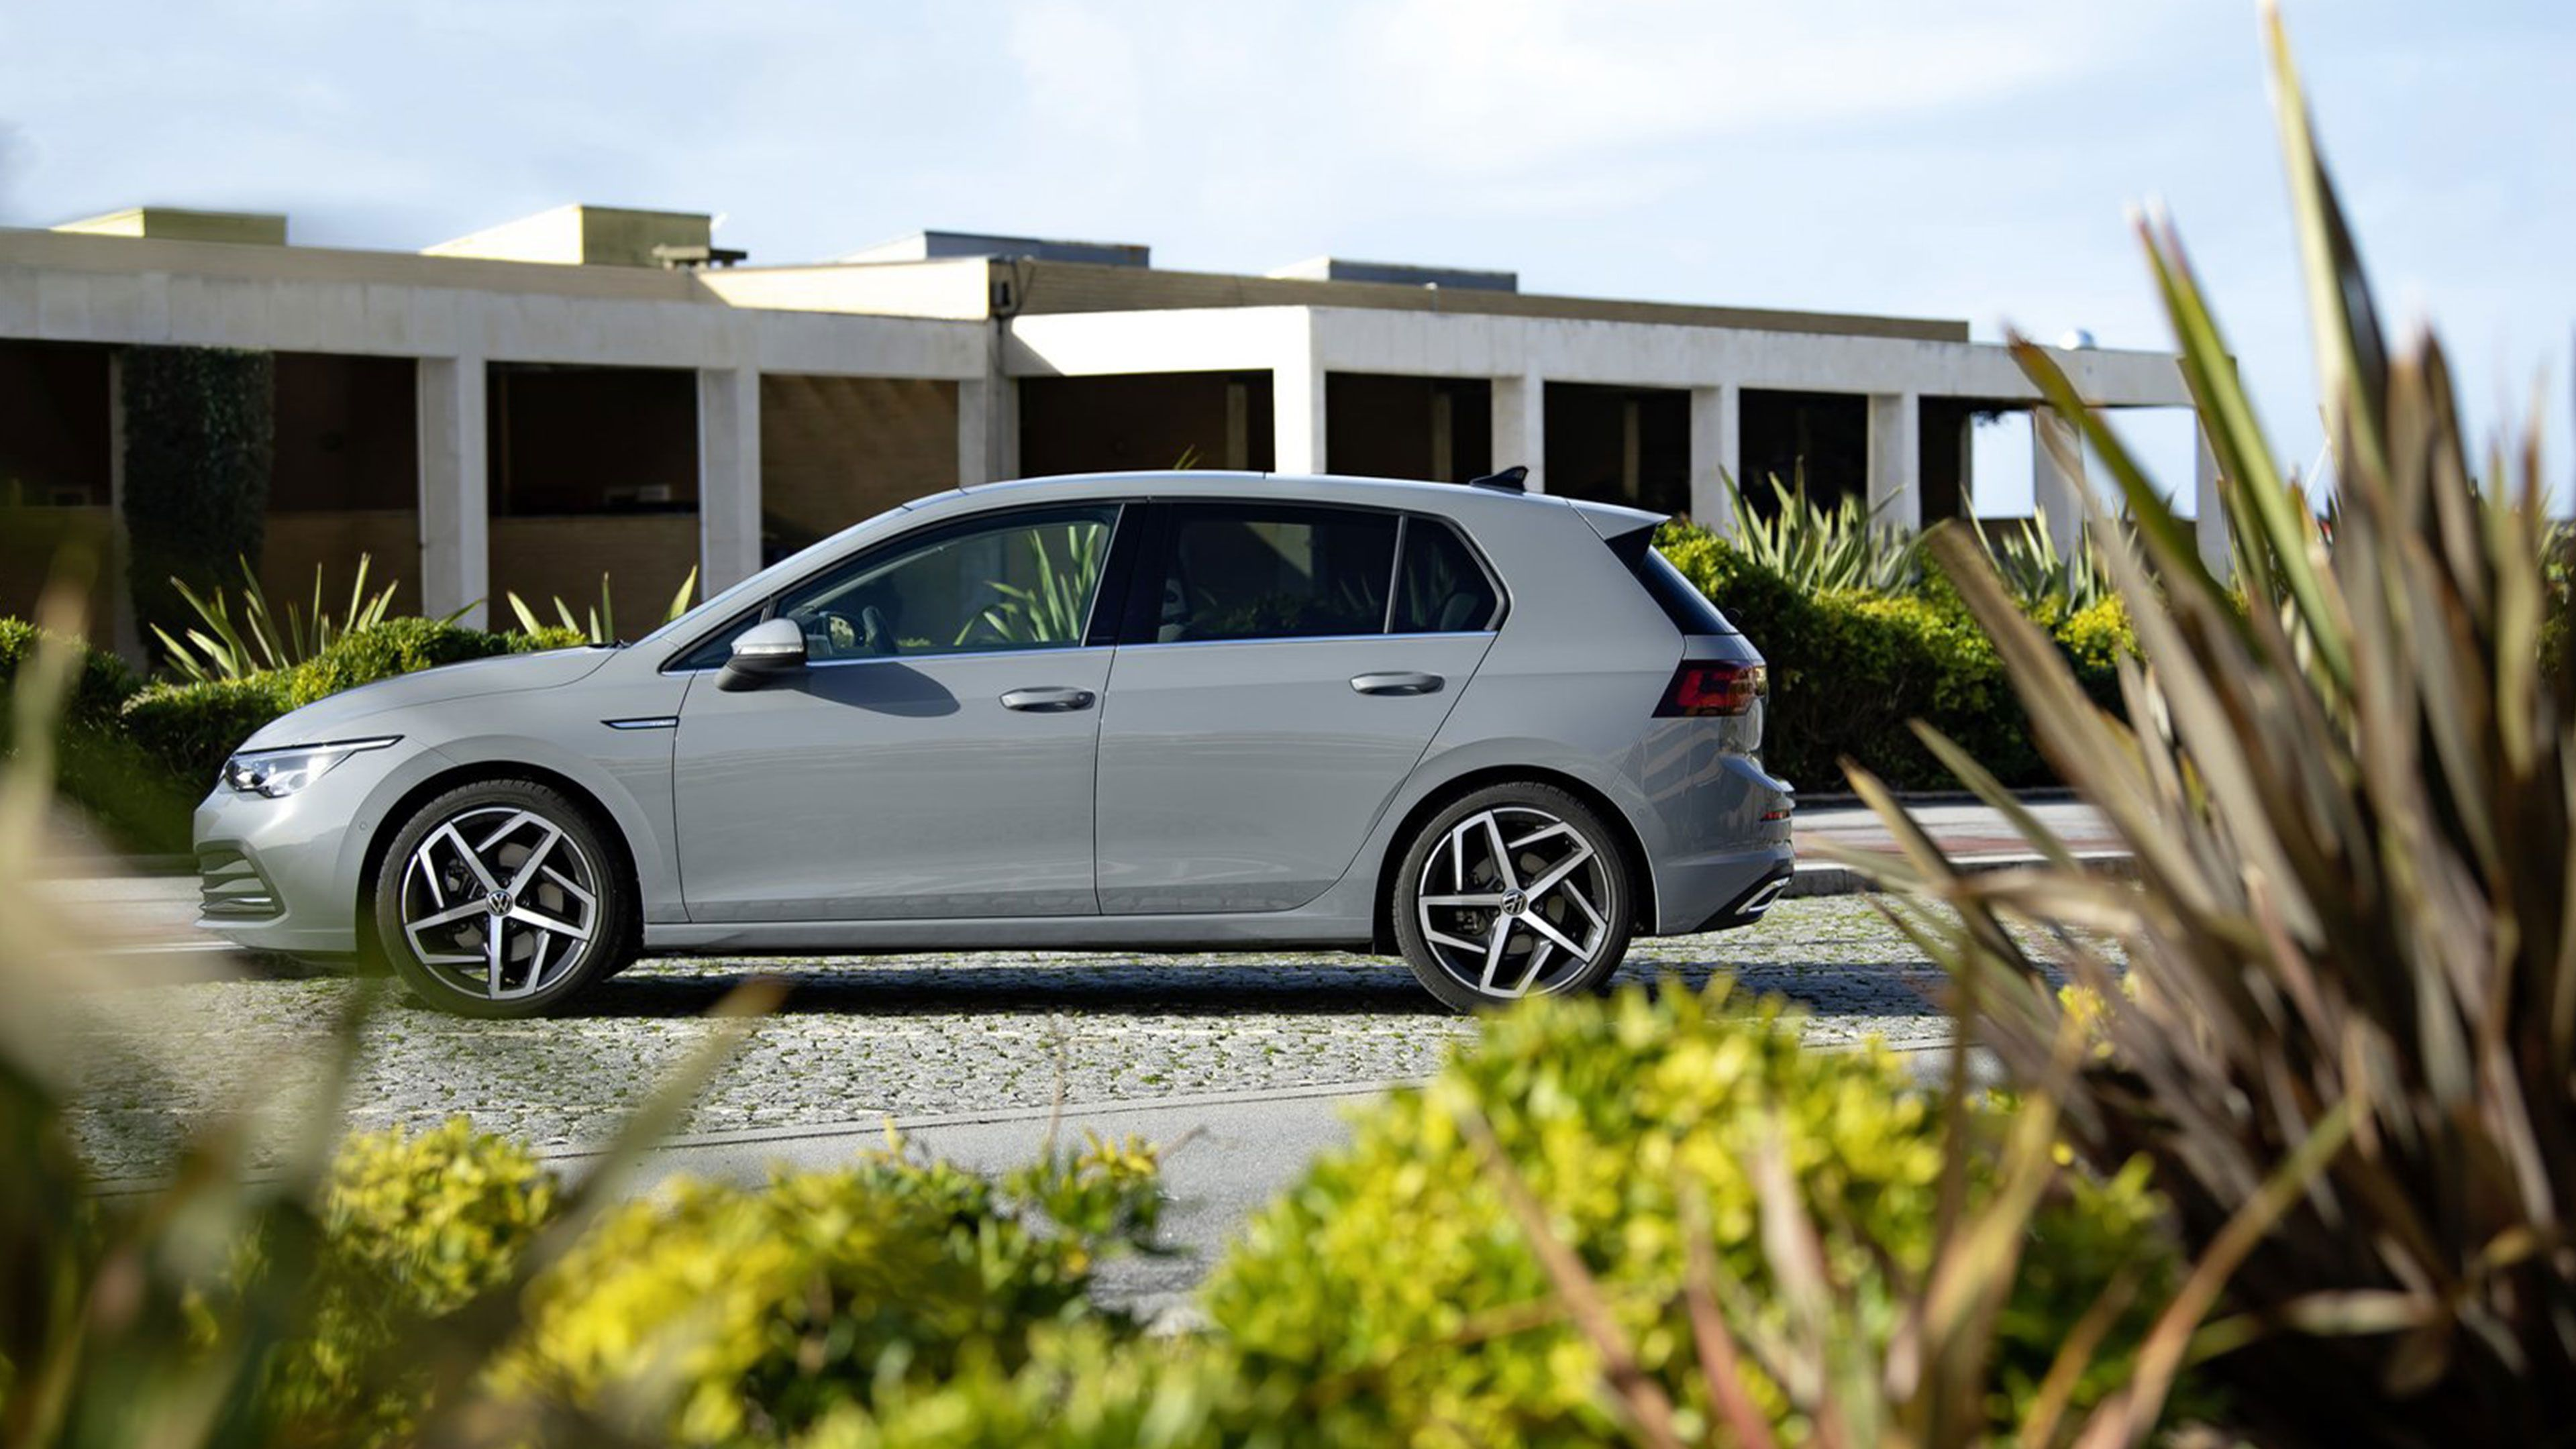 STA_LP_VW_Golf8_Parallax-BG_3840x2160